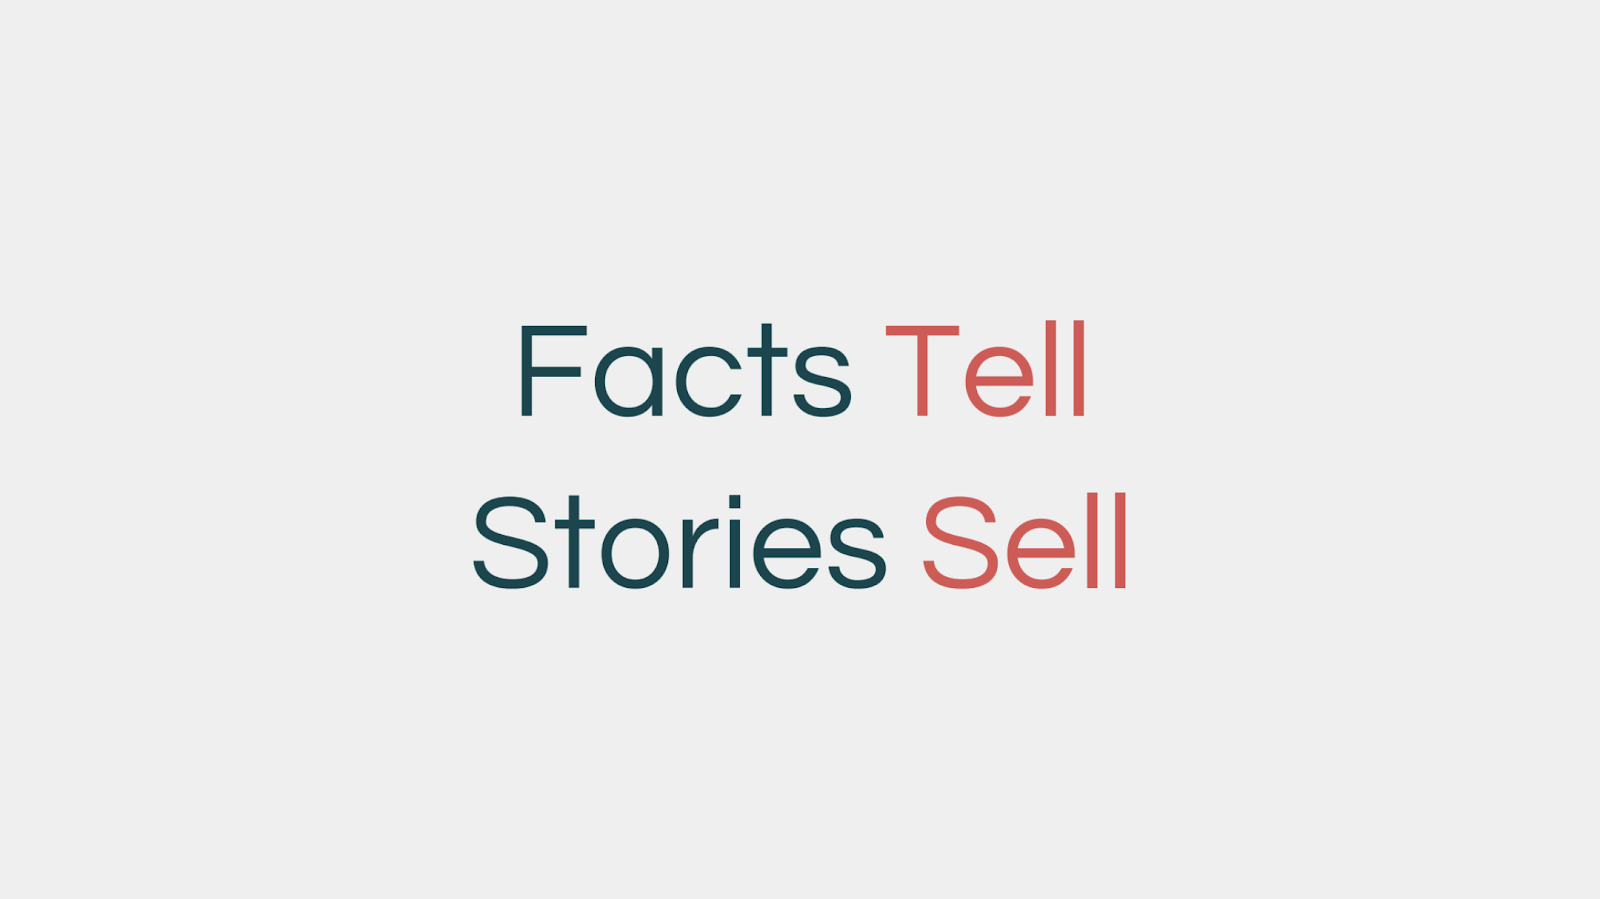 facts tell, stories sell